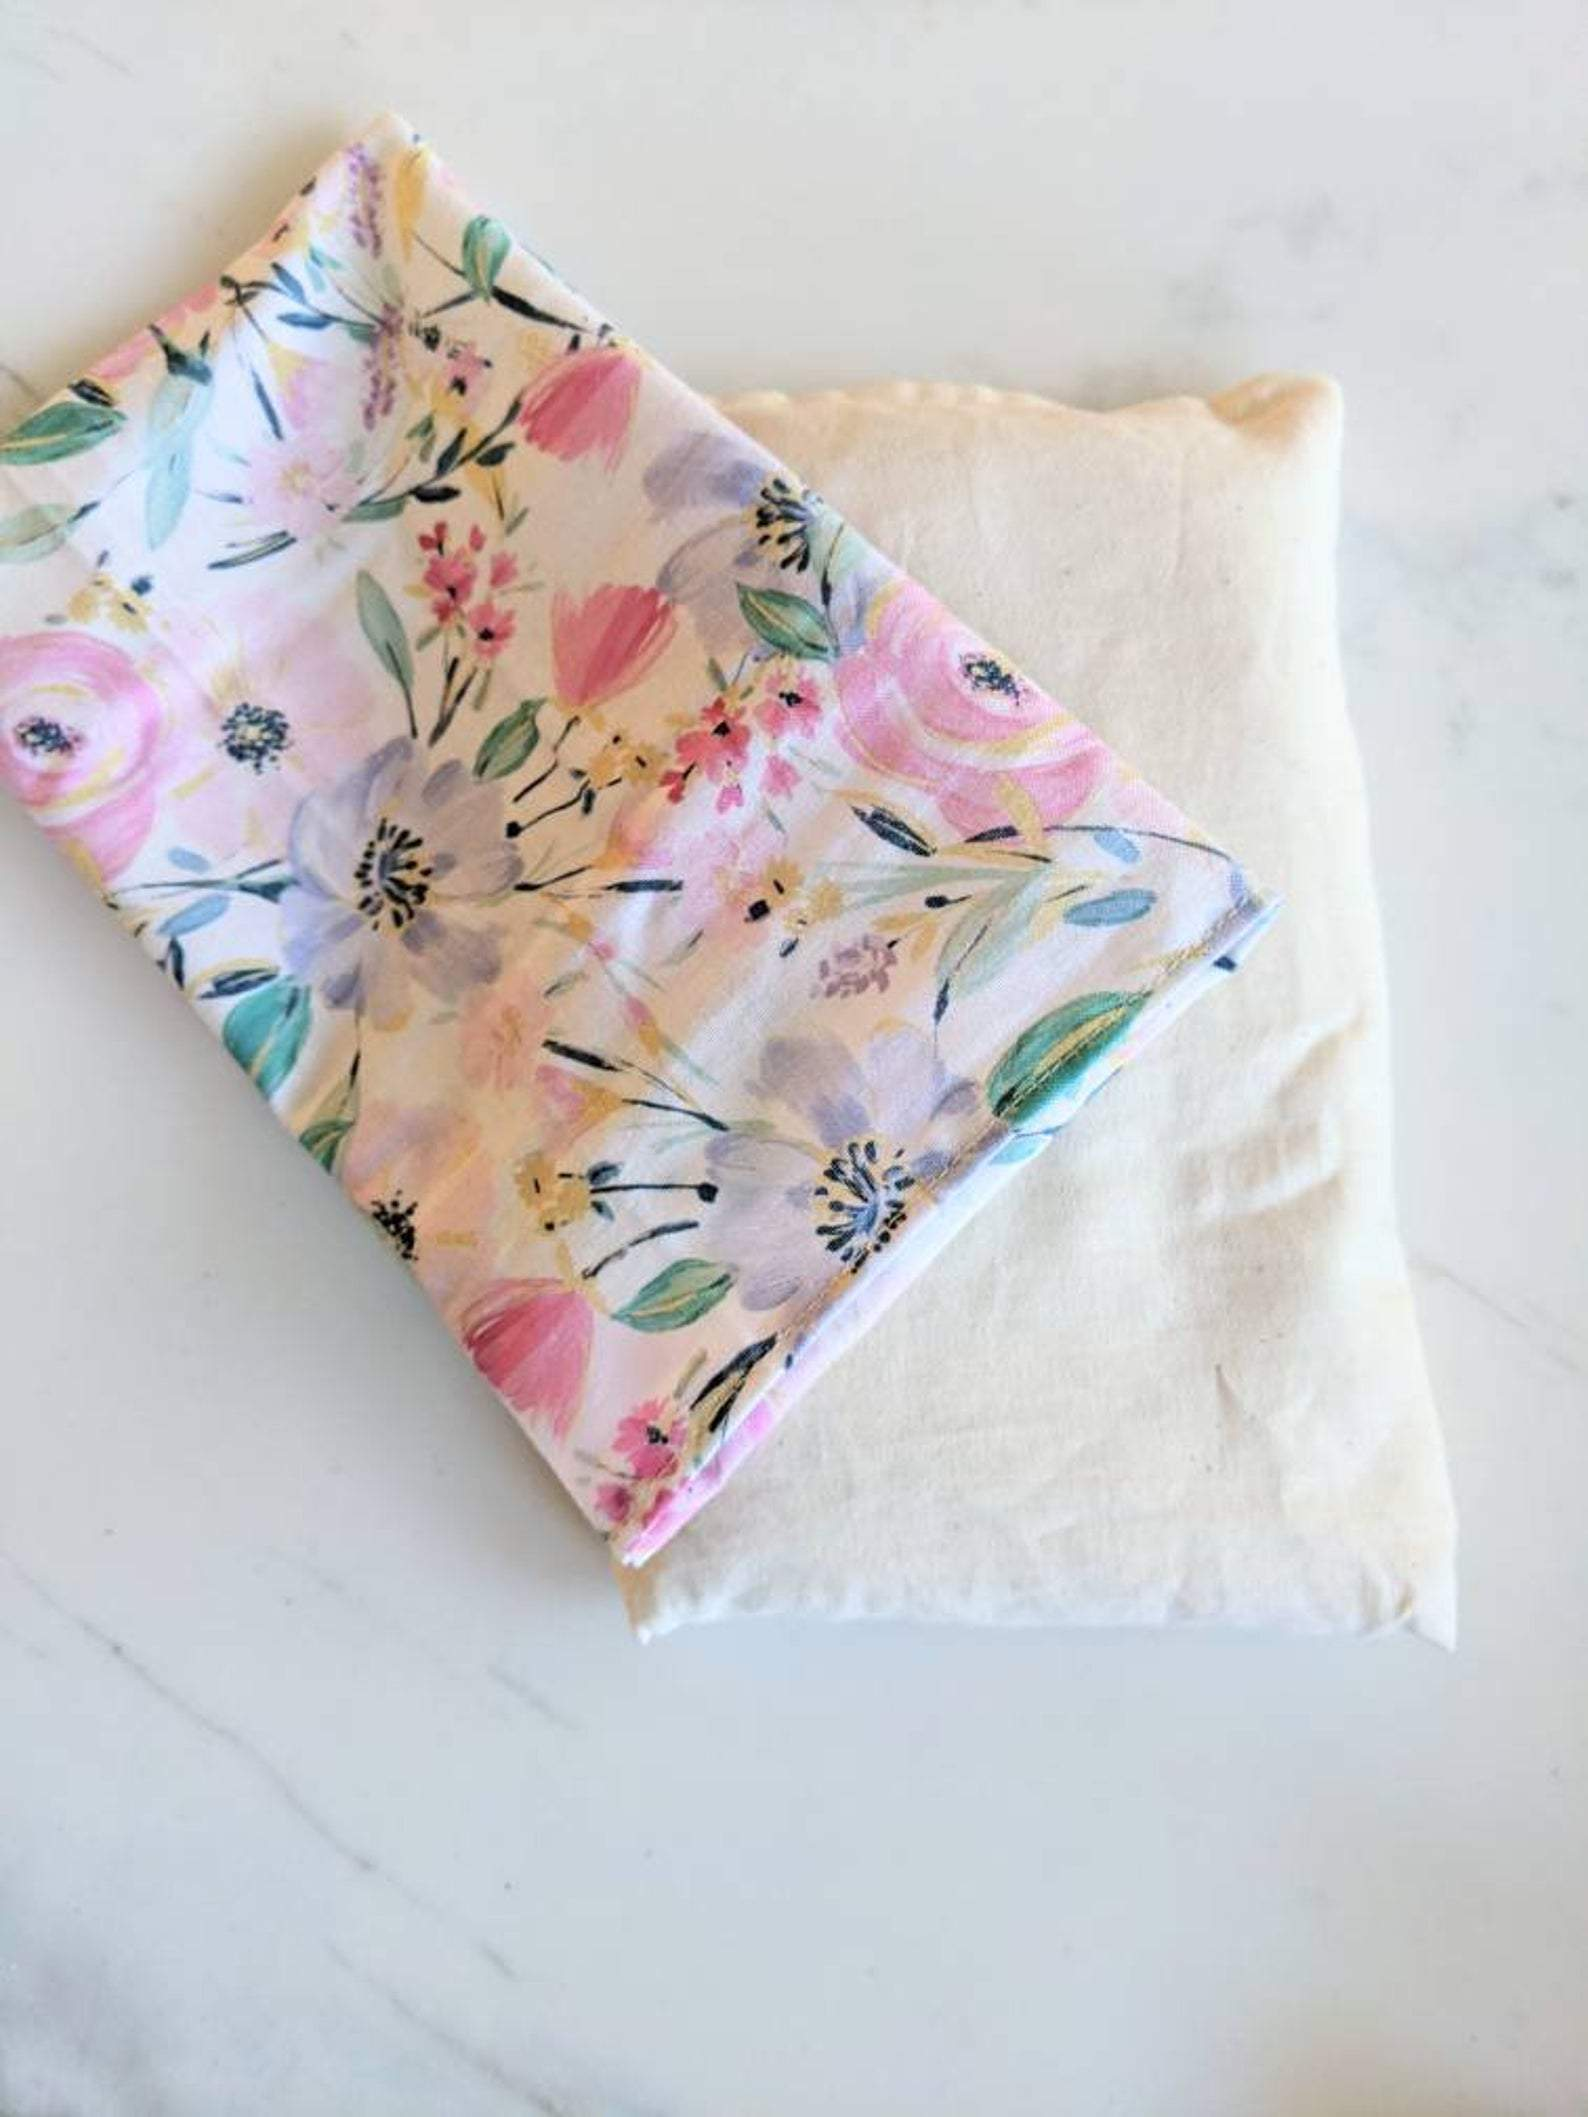 Weighted Eye Pillow - Watercolor Floral